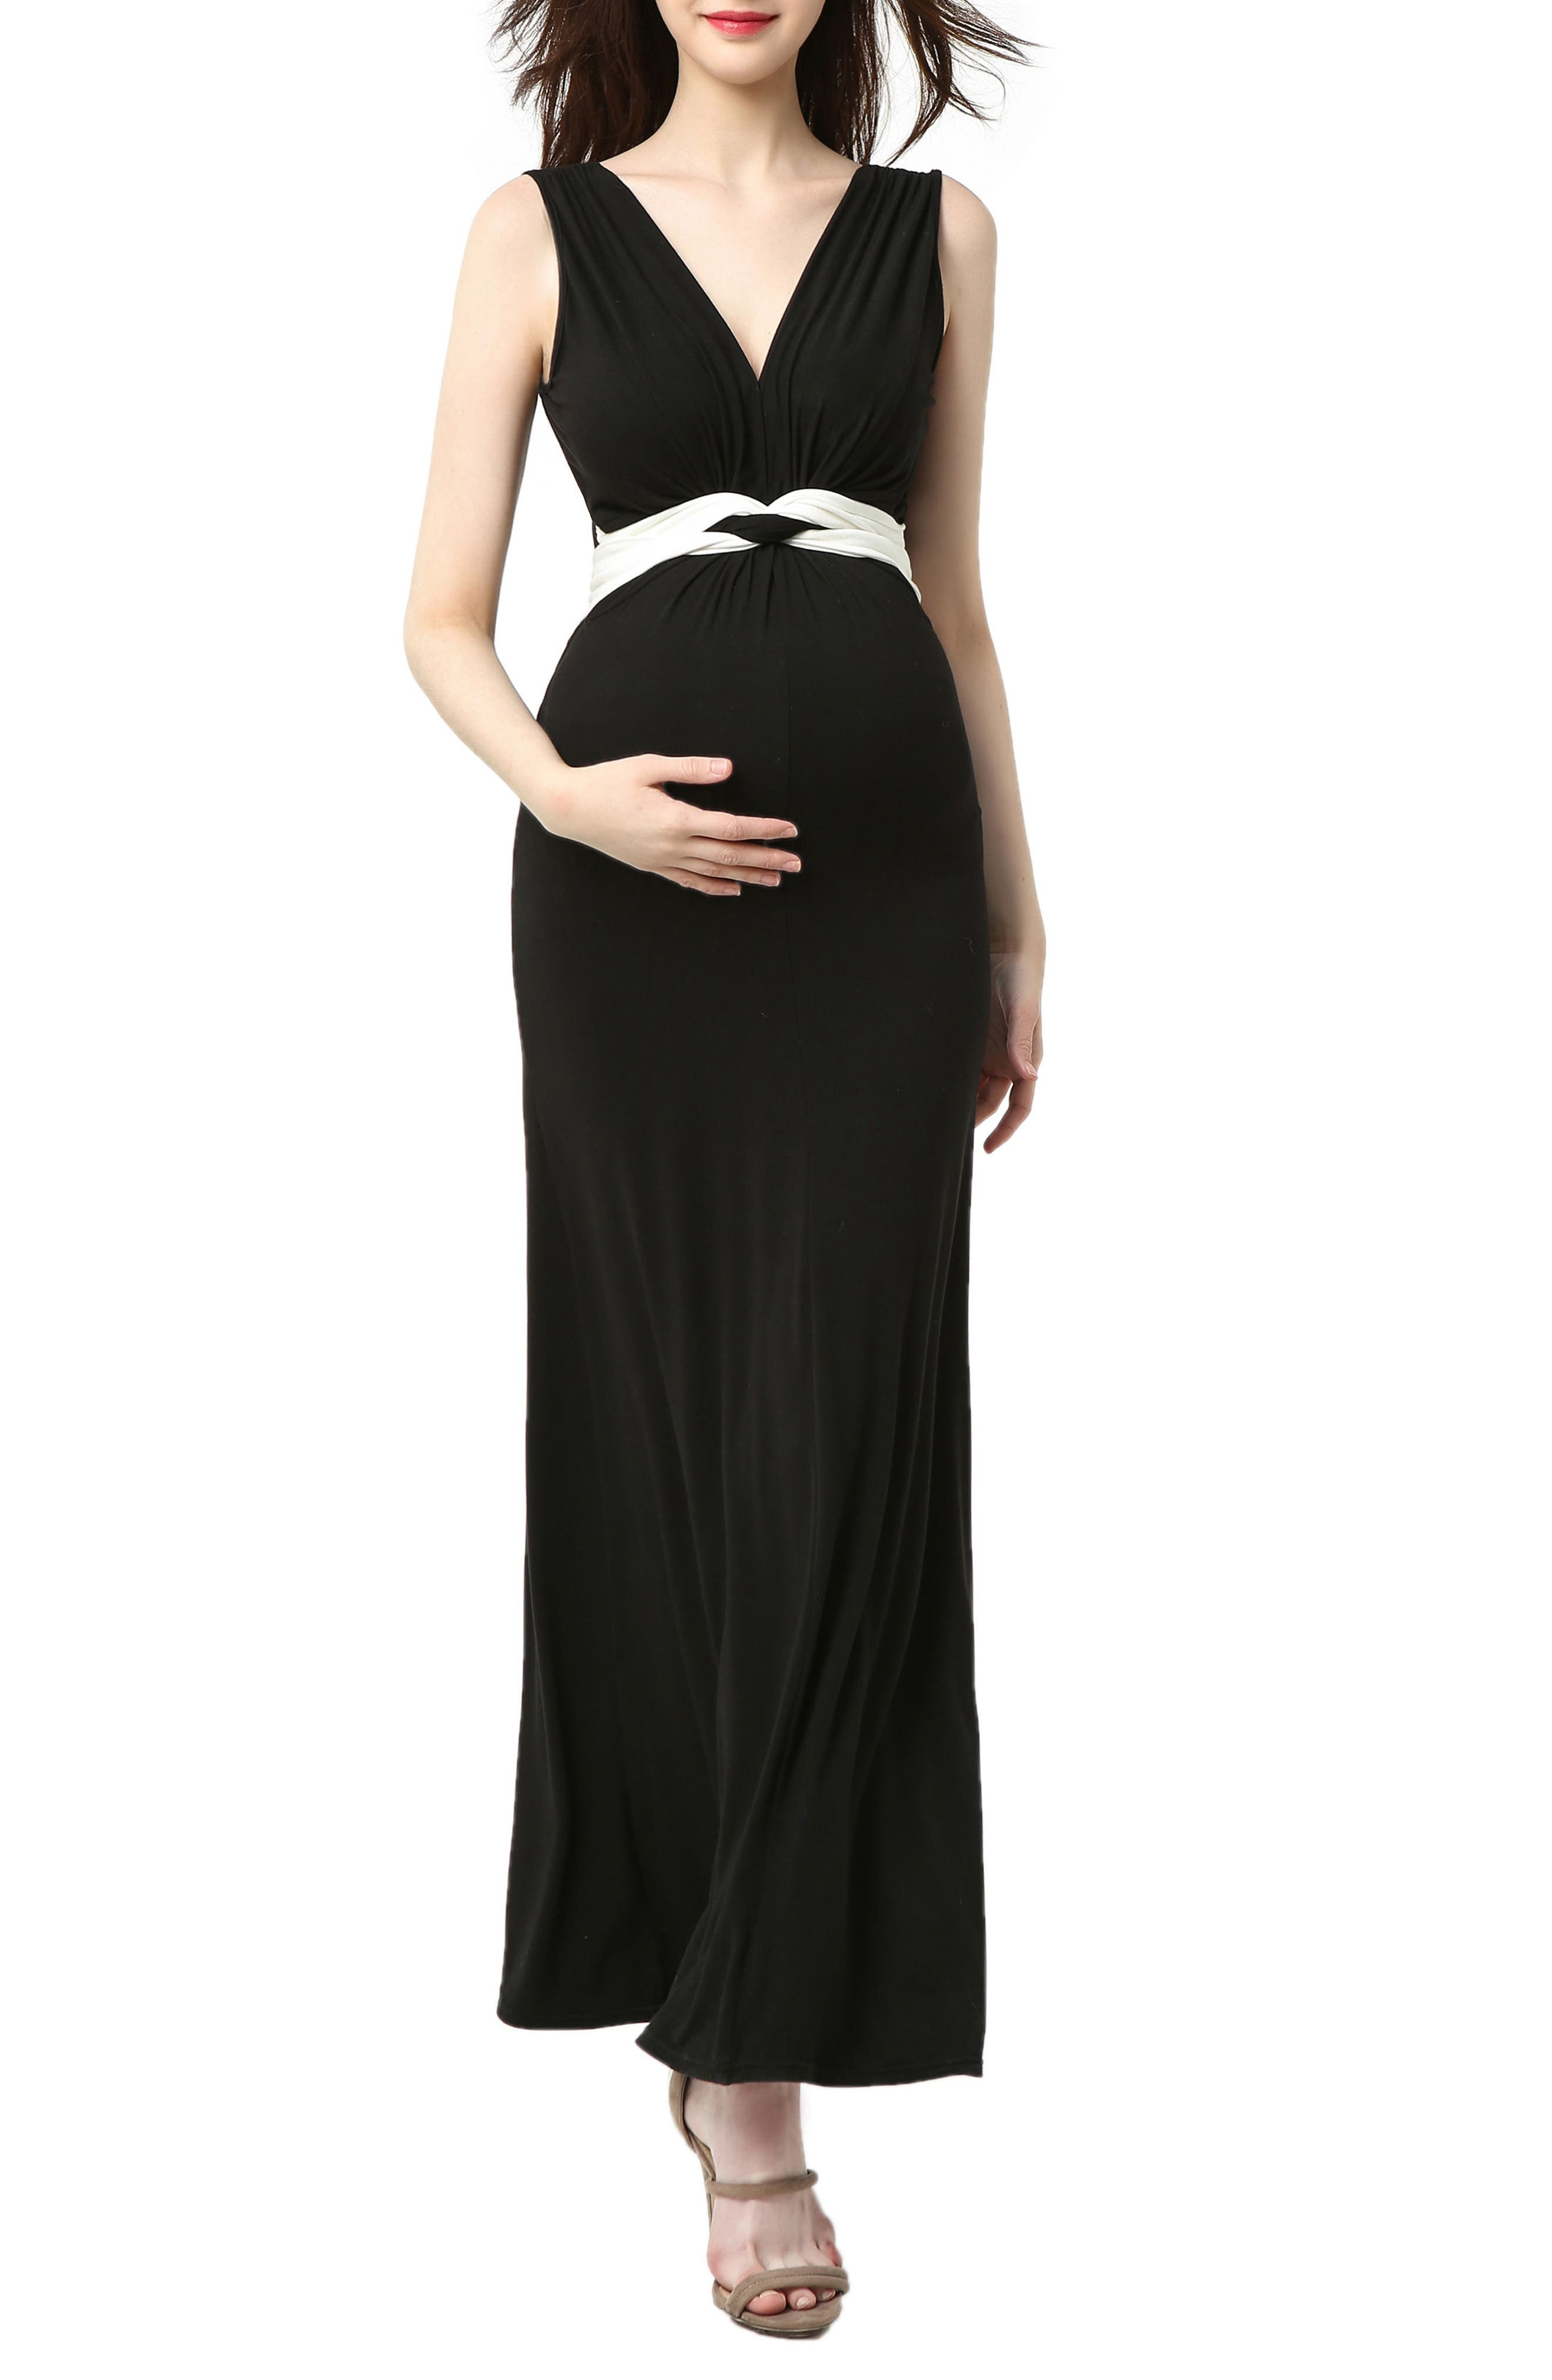 Vintage Maternity Dresses and Clothes Womens Kimi And Kai Scarlett Maternity Maxi Dress Size X-Small - Black $61.60 AT vintagedancer.com